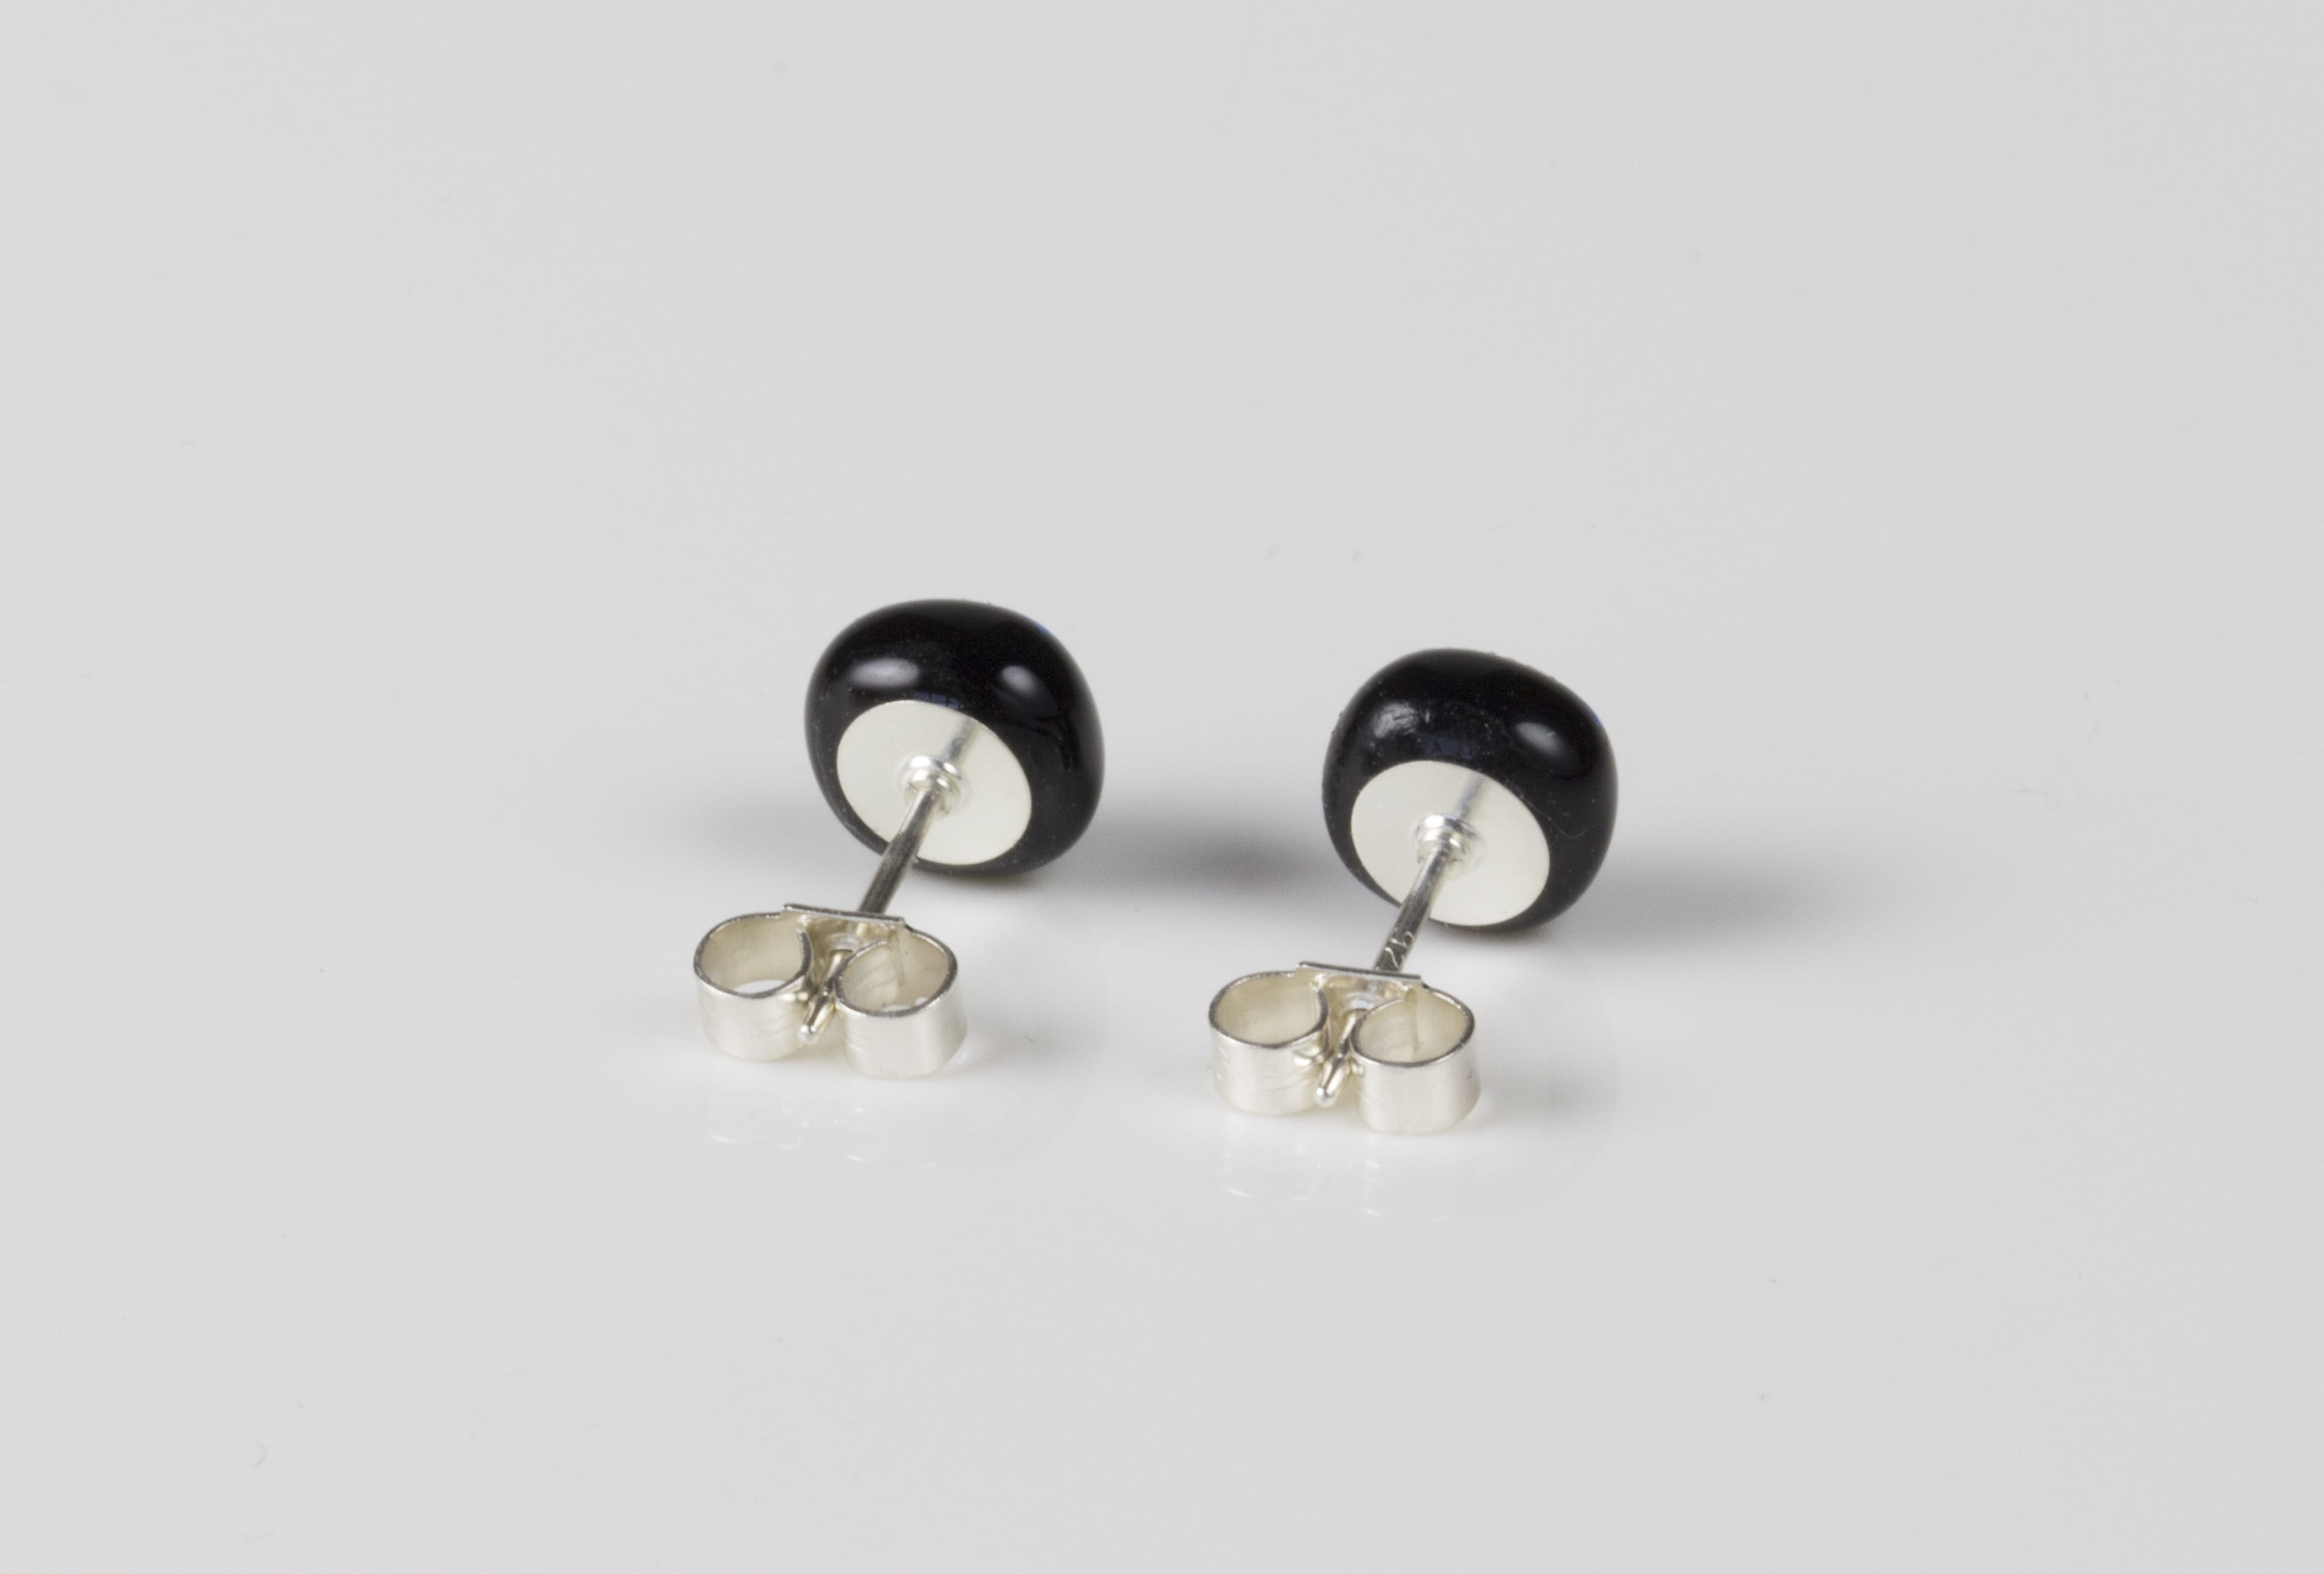 Dichroic glass jewellery uk, handmade stud earrings with pale blue dichroic glass, round, sterling glass 7-9mm, silver posts.